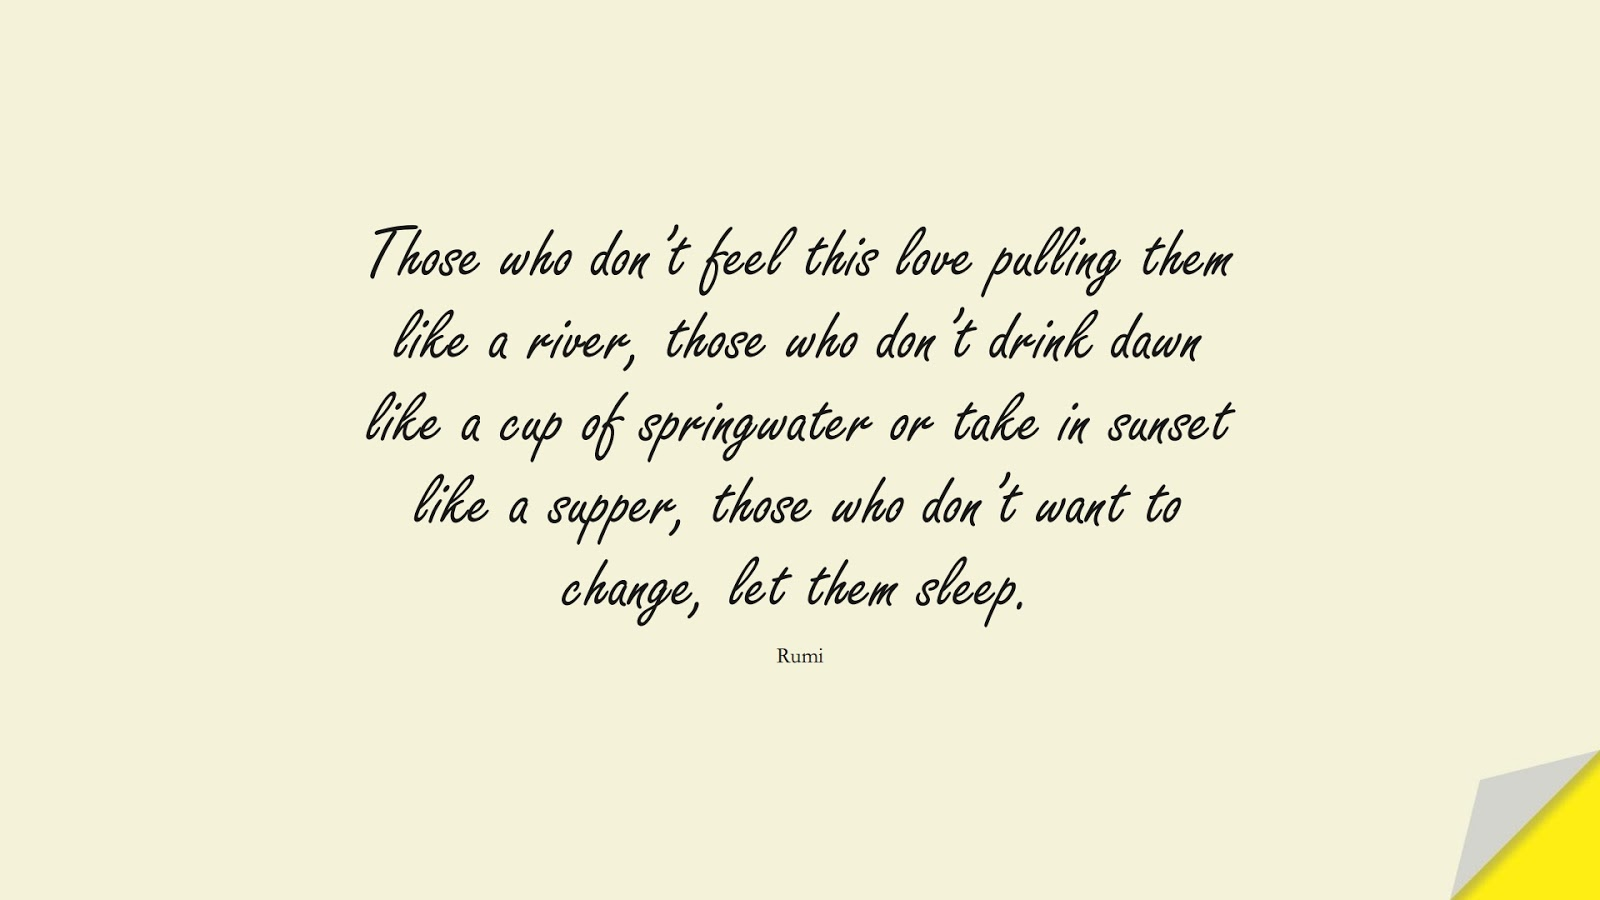 Those who don't feel this love pulling them like a river, those who don't drink dawn like a cup of springwater or take in sunset like a supper, those who don't want to change, let them sleep. (Rumi);  #RumiQuotes